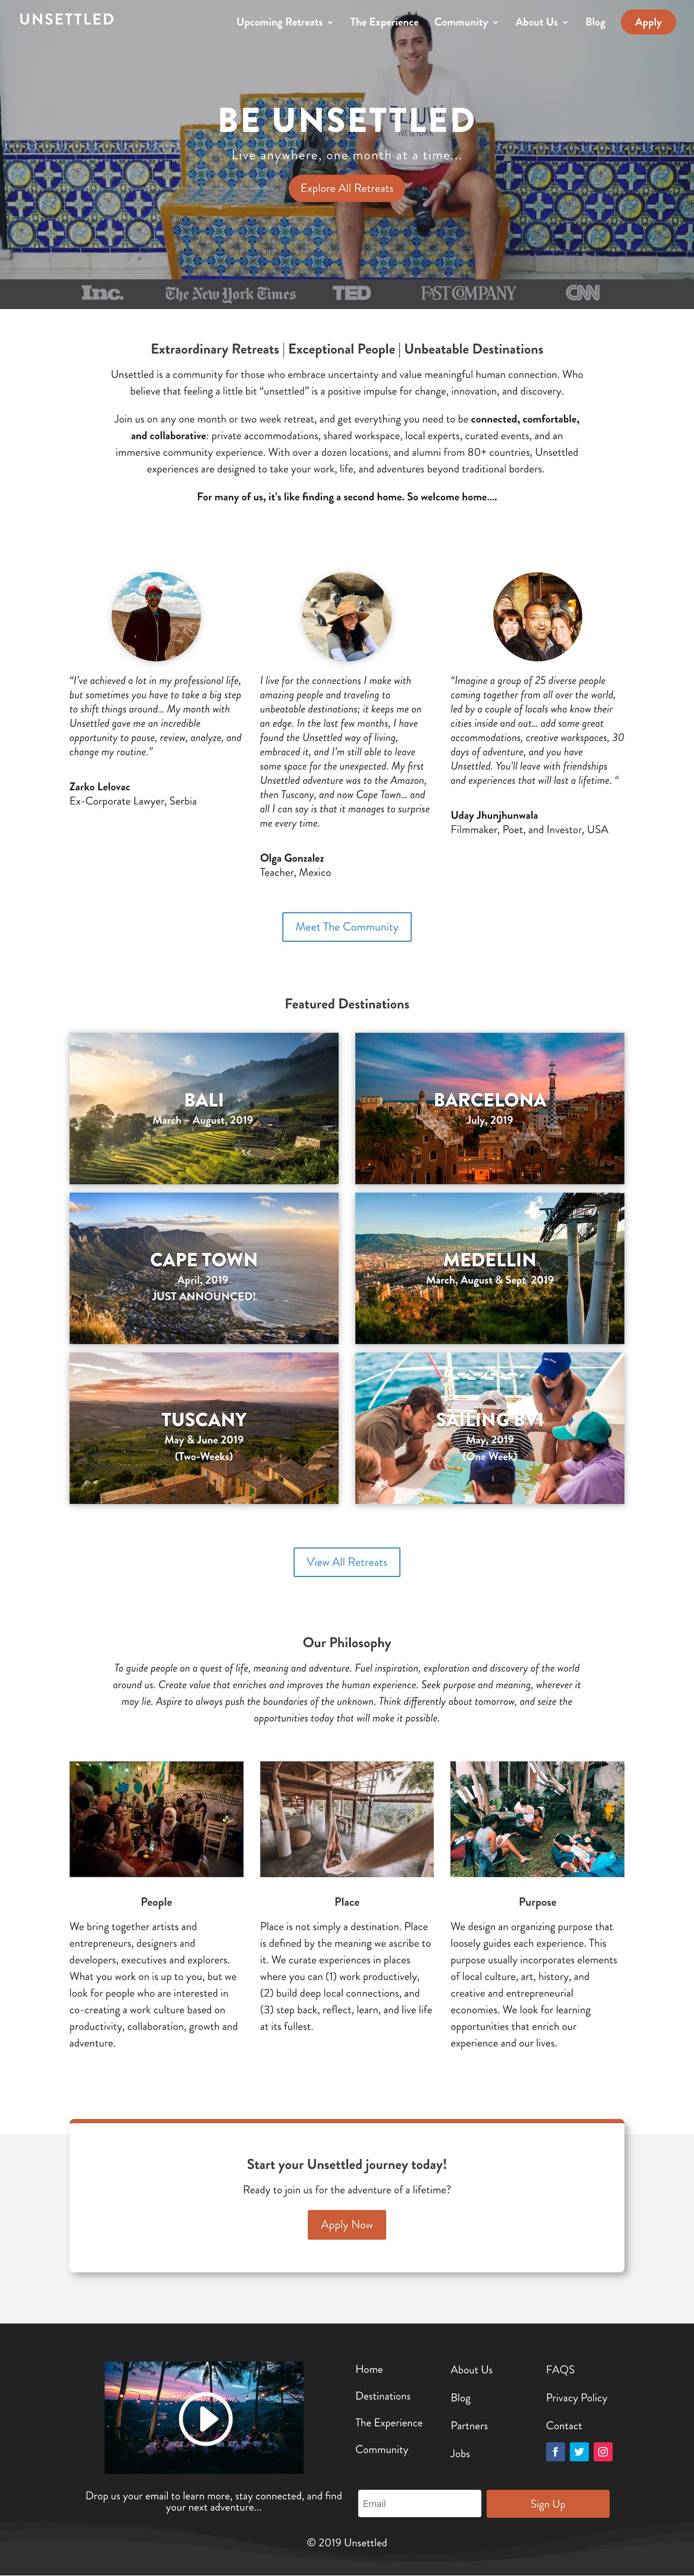 Unsettled home page design